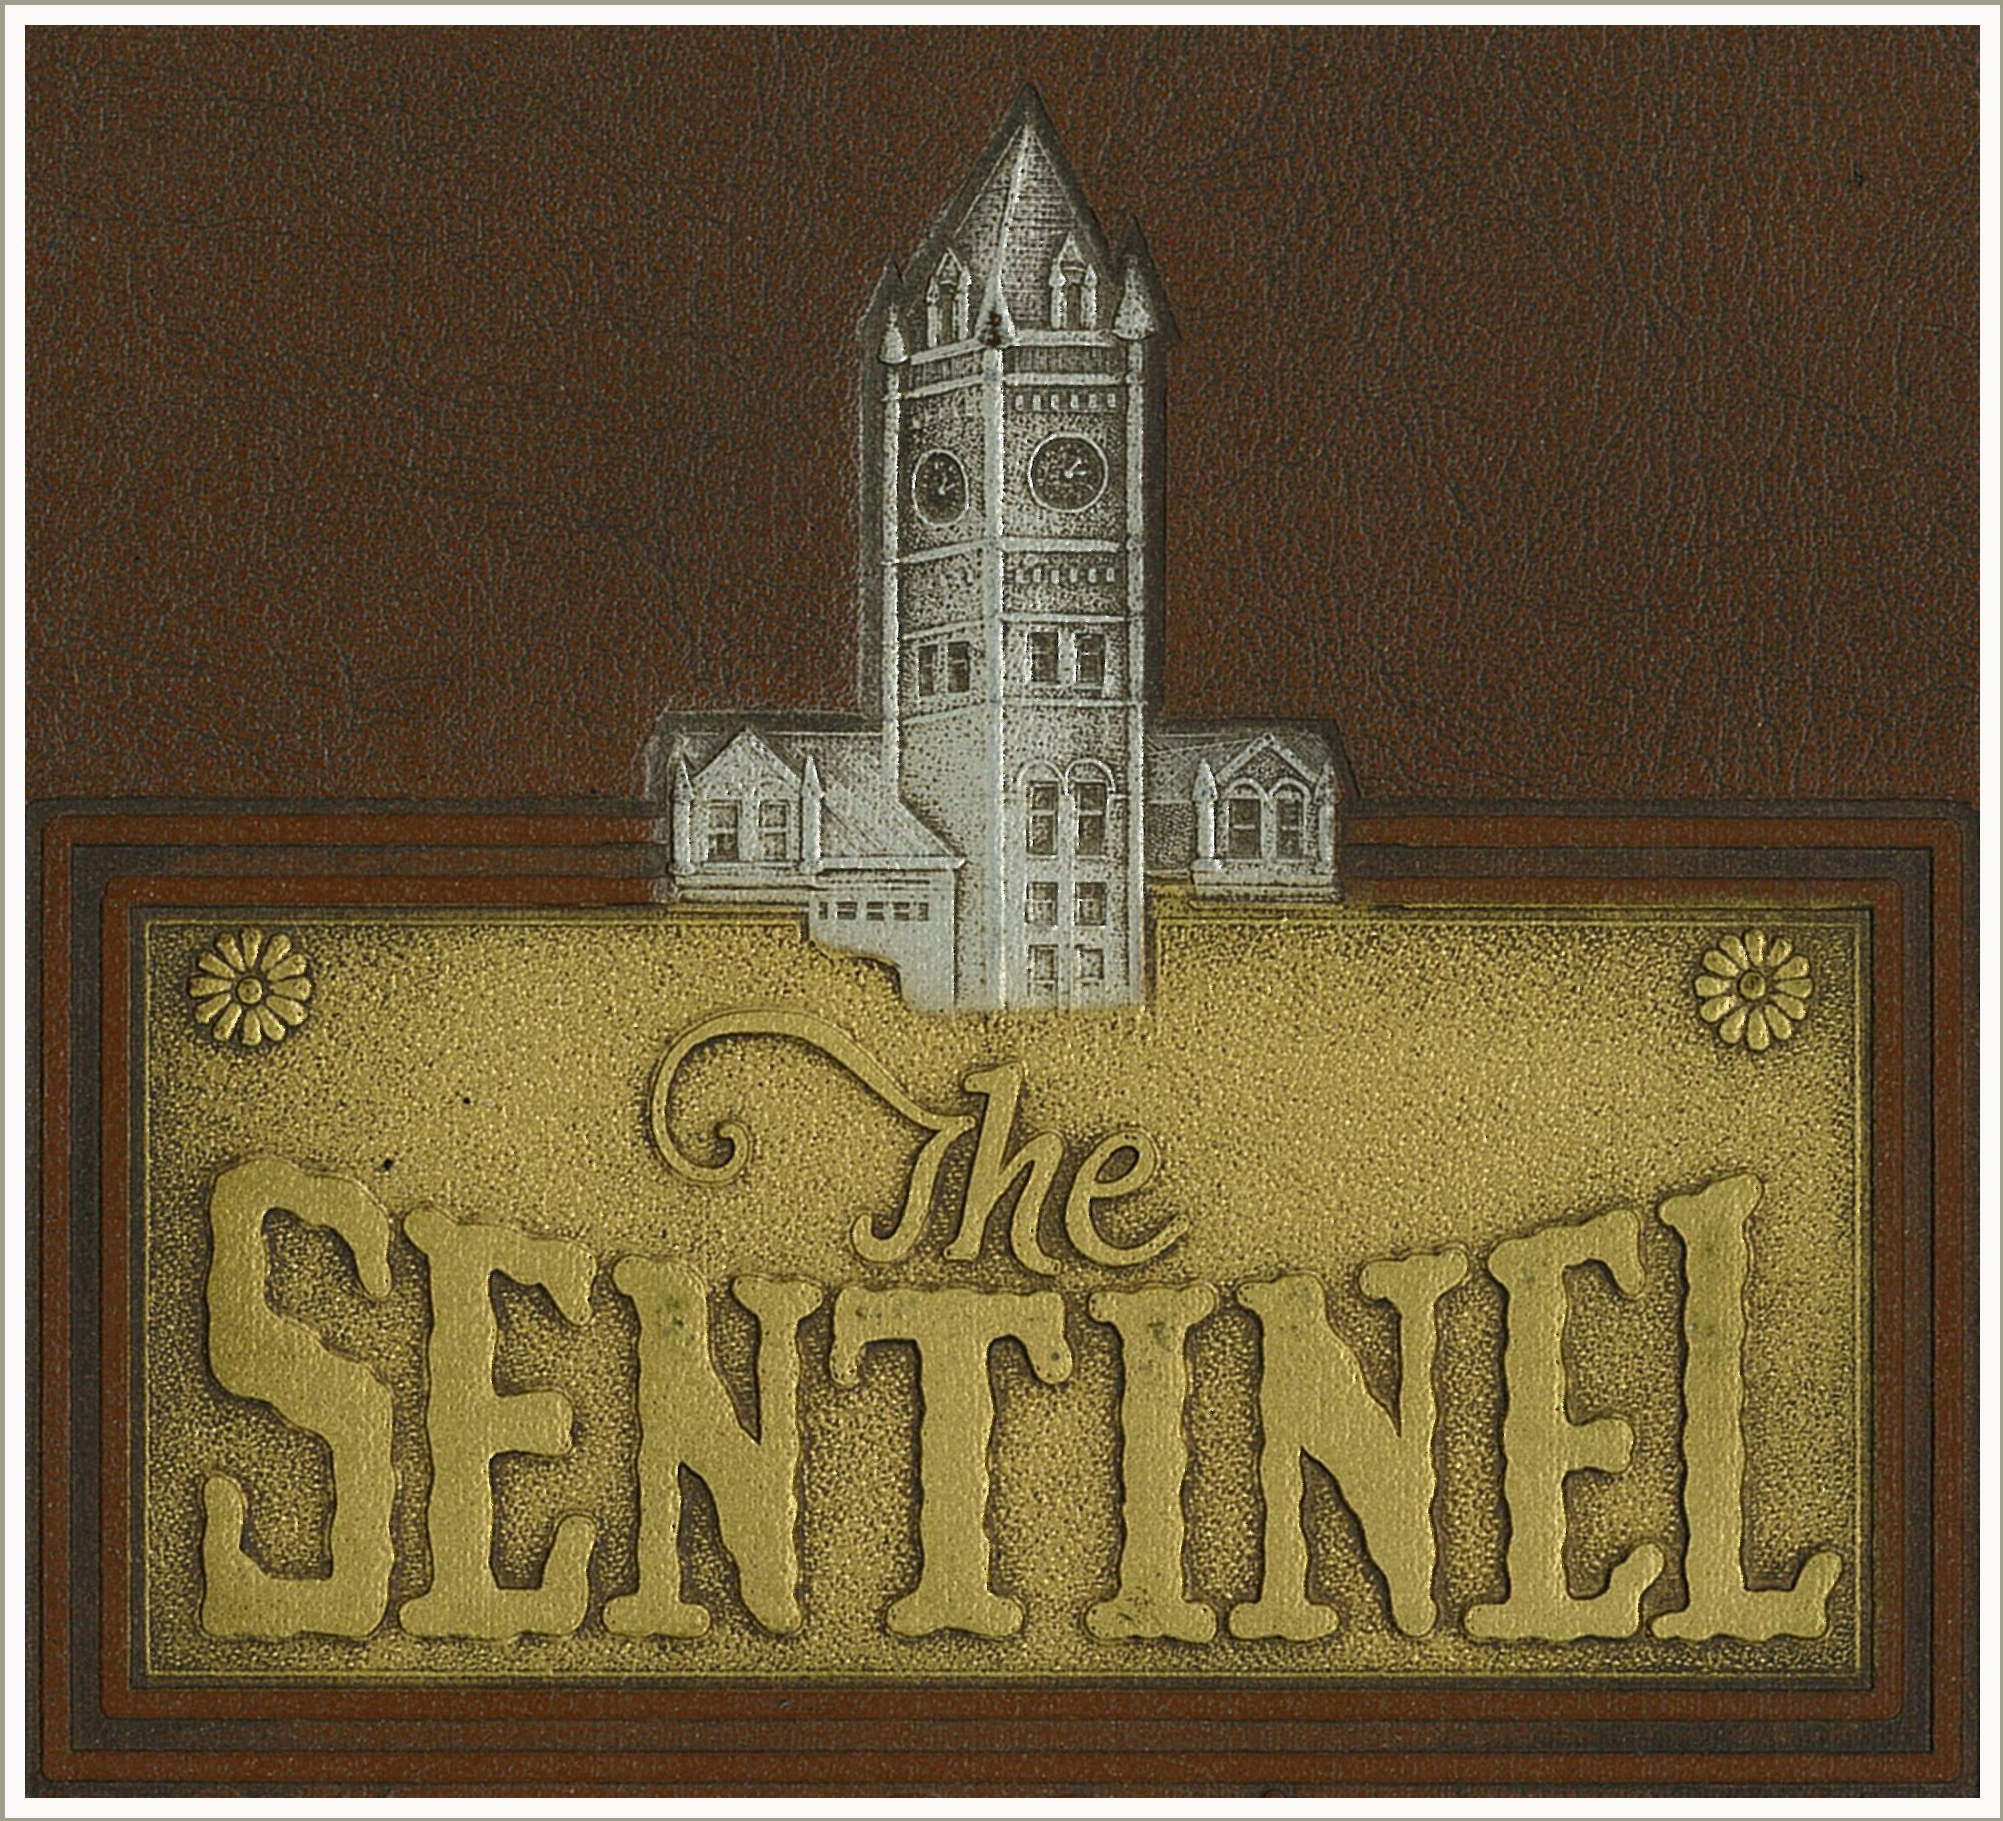 Sentinel logo etched in brass